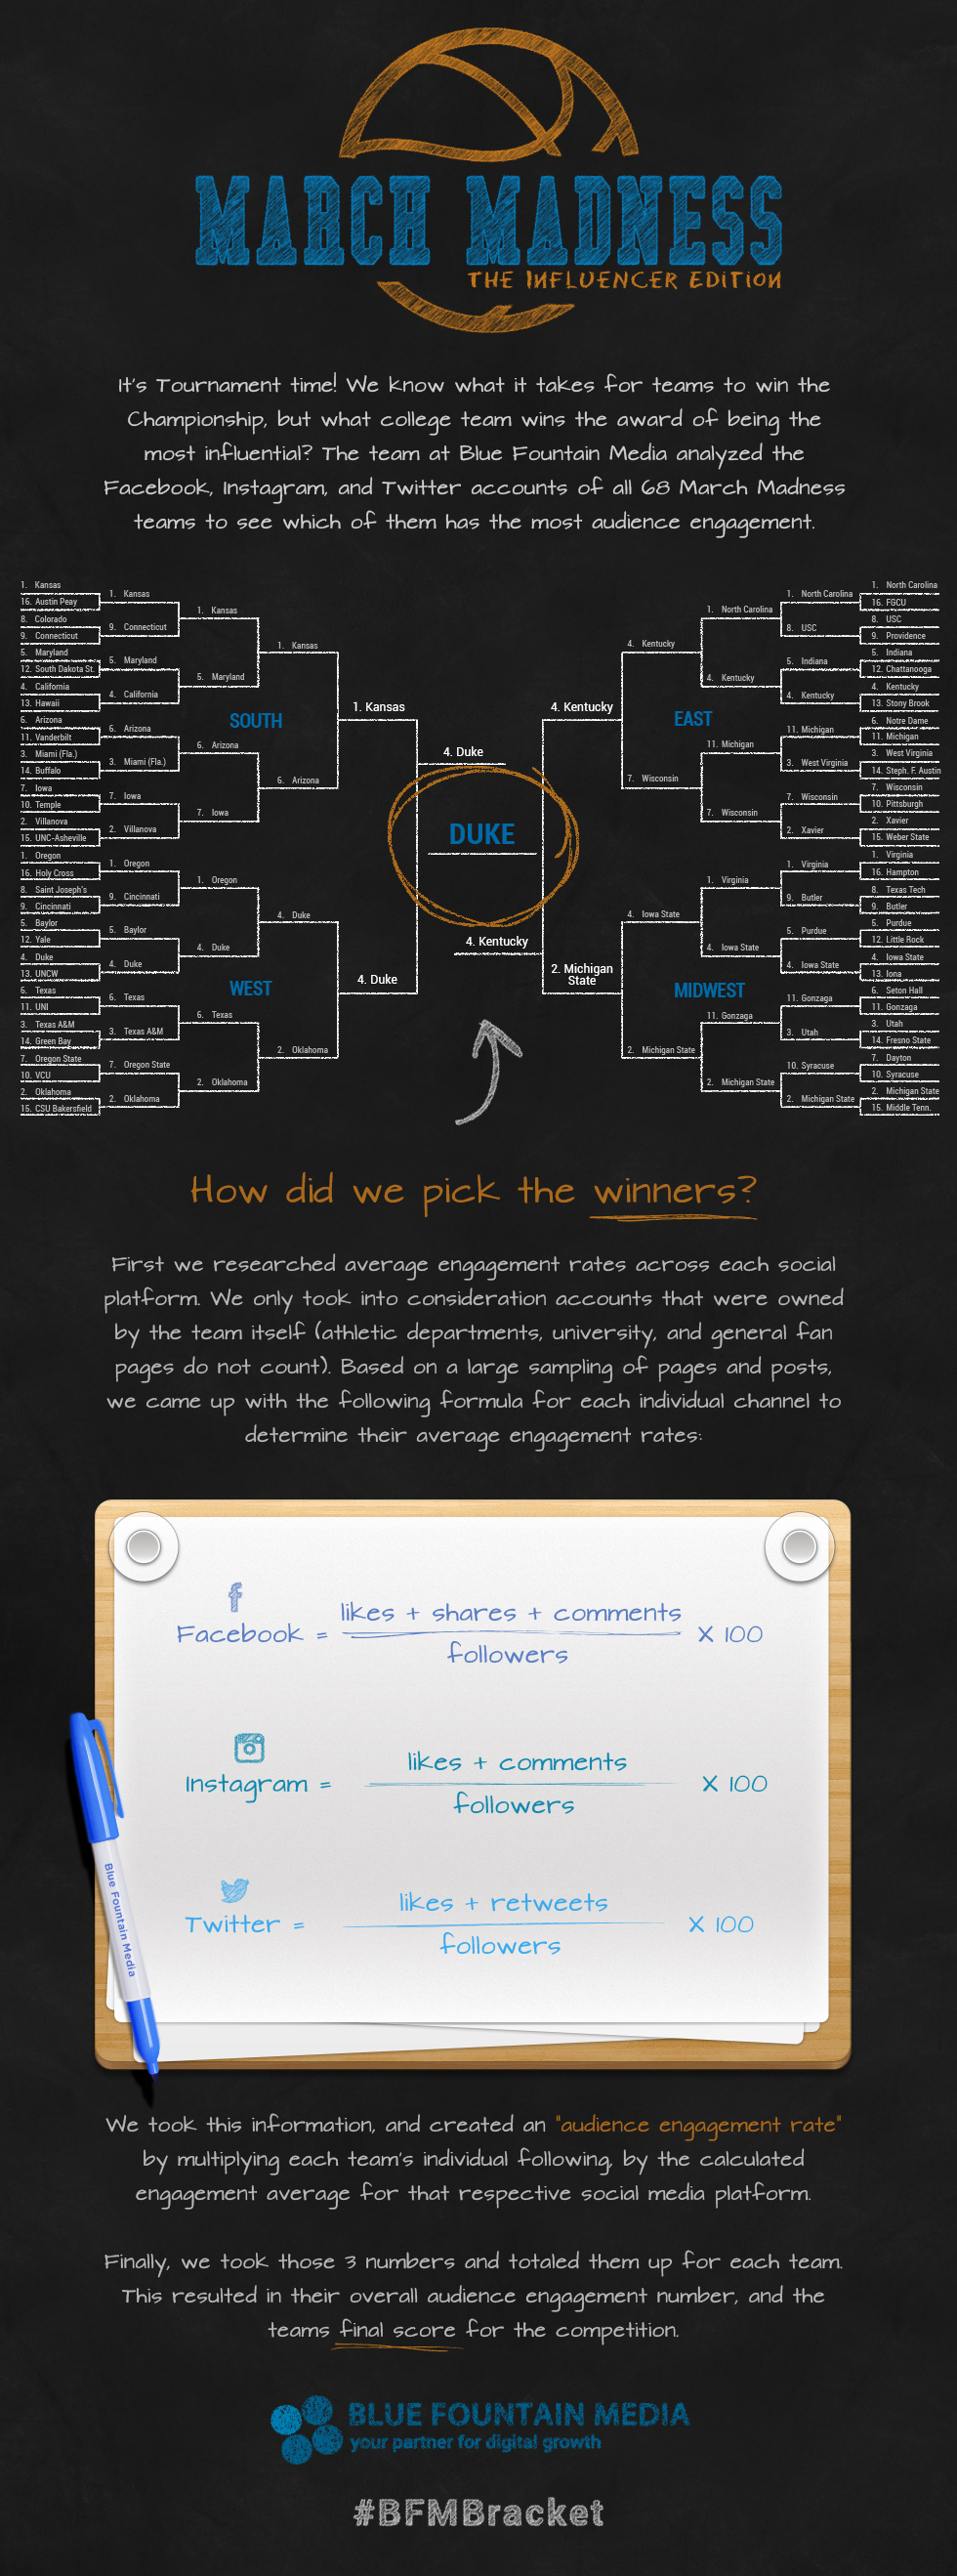 March Madness social media anlysis